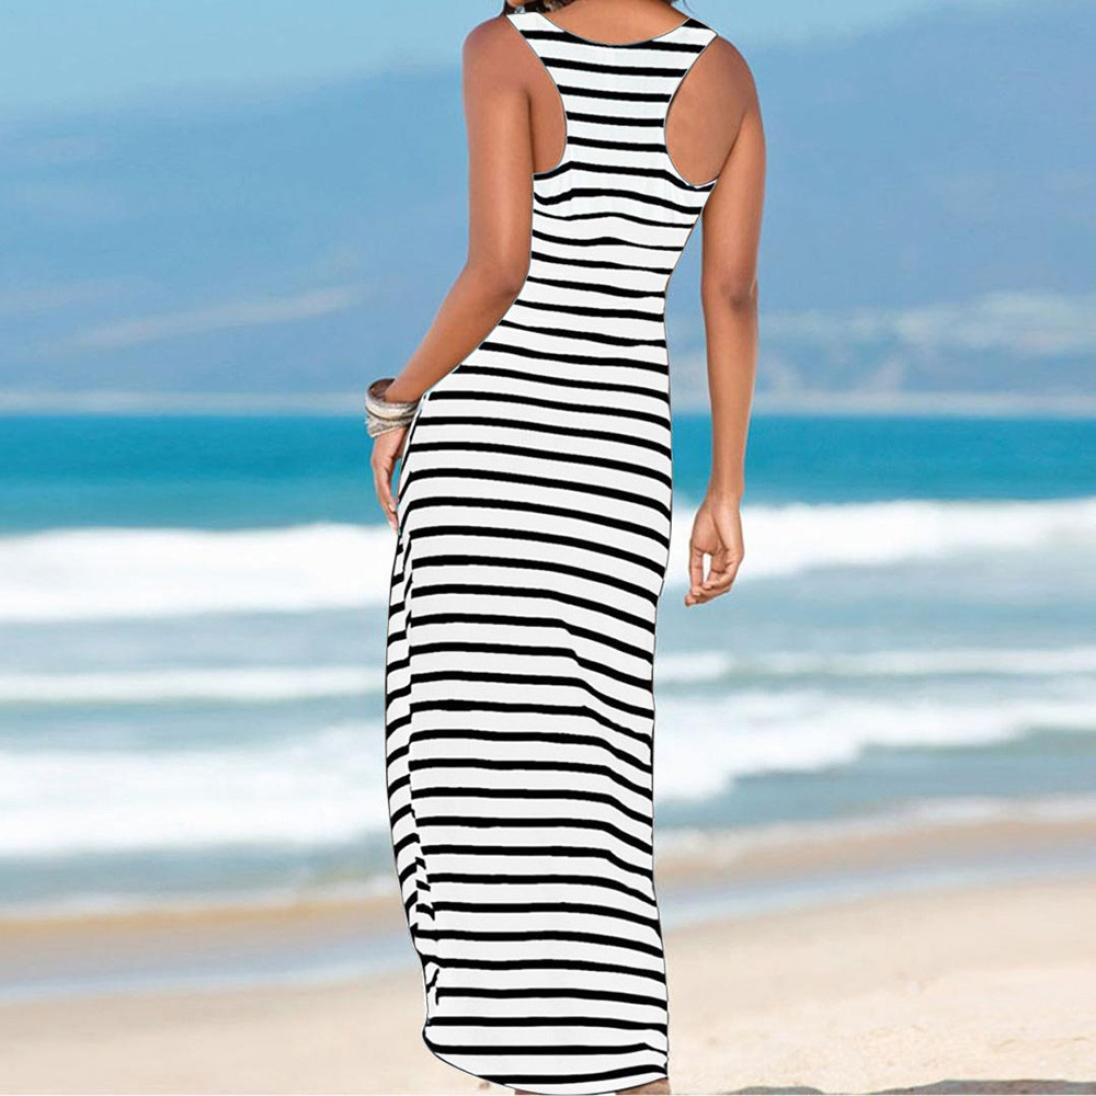 51d5032cda Black Striped Dress for Women Maxi Beach Sleeveless Racerback Sundress  Boatneck larger image